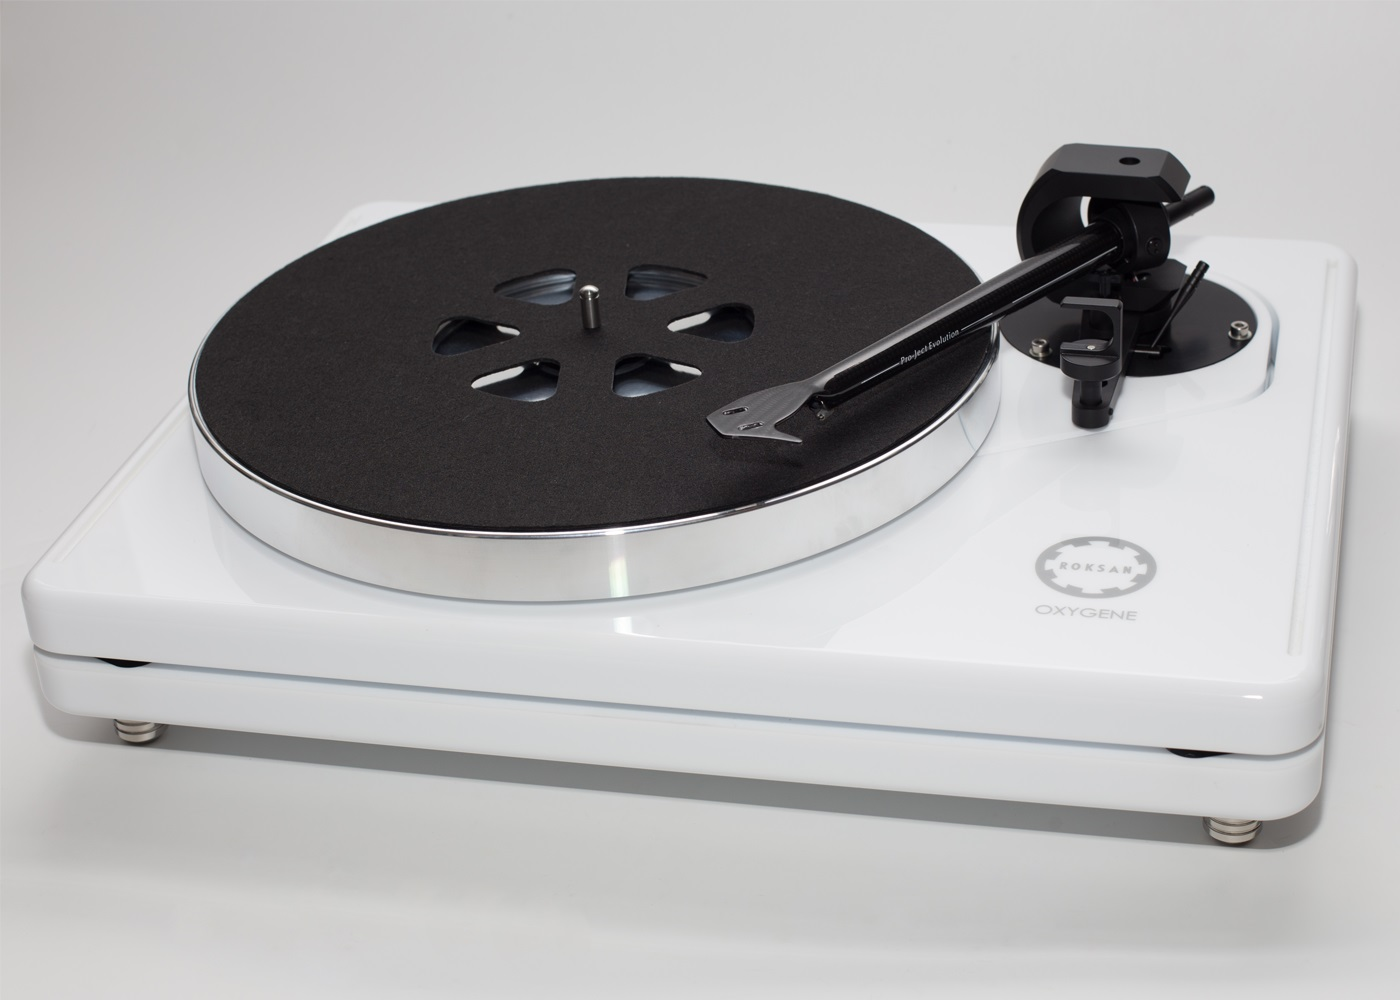 Picture of Roksan Oxygene 30 Turntable